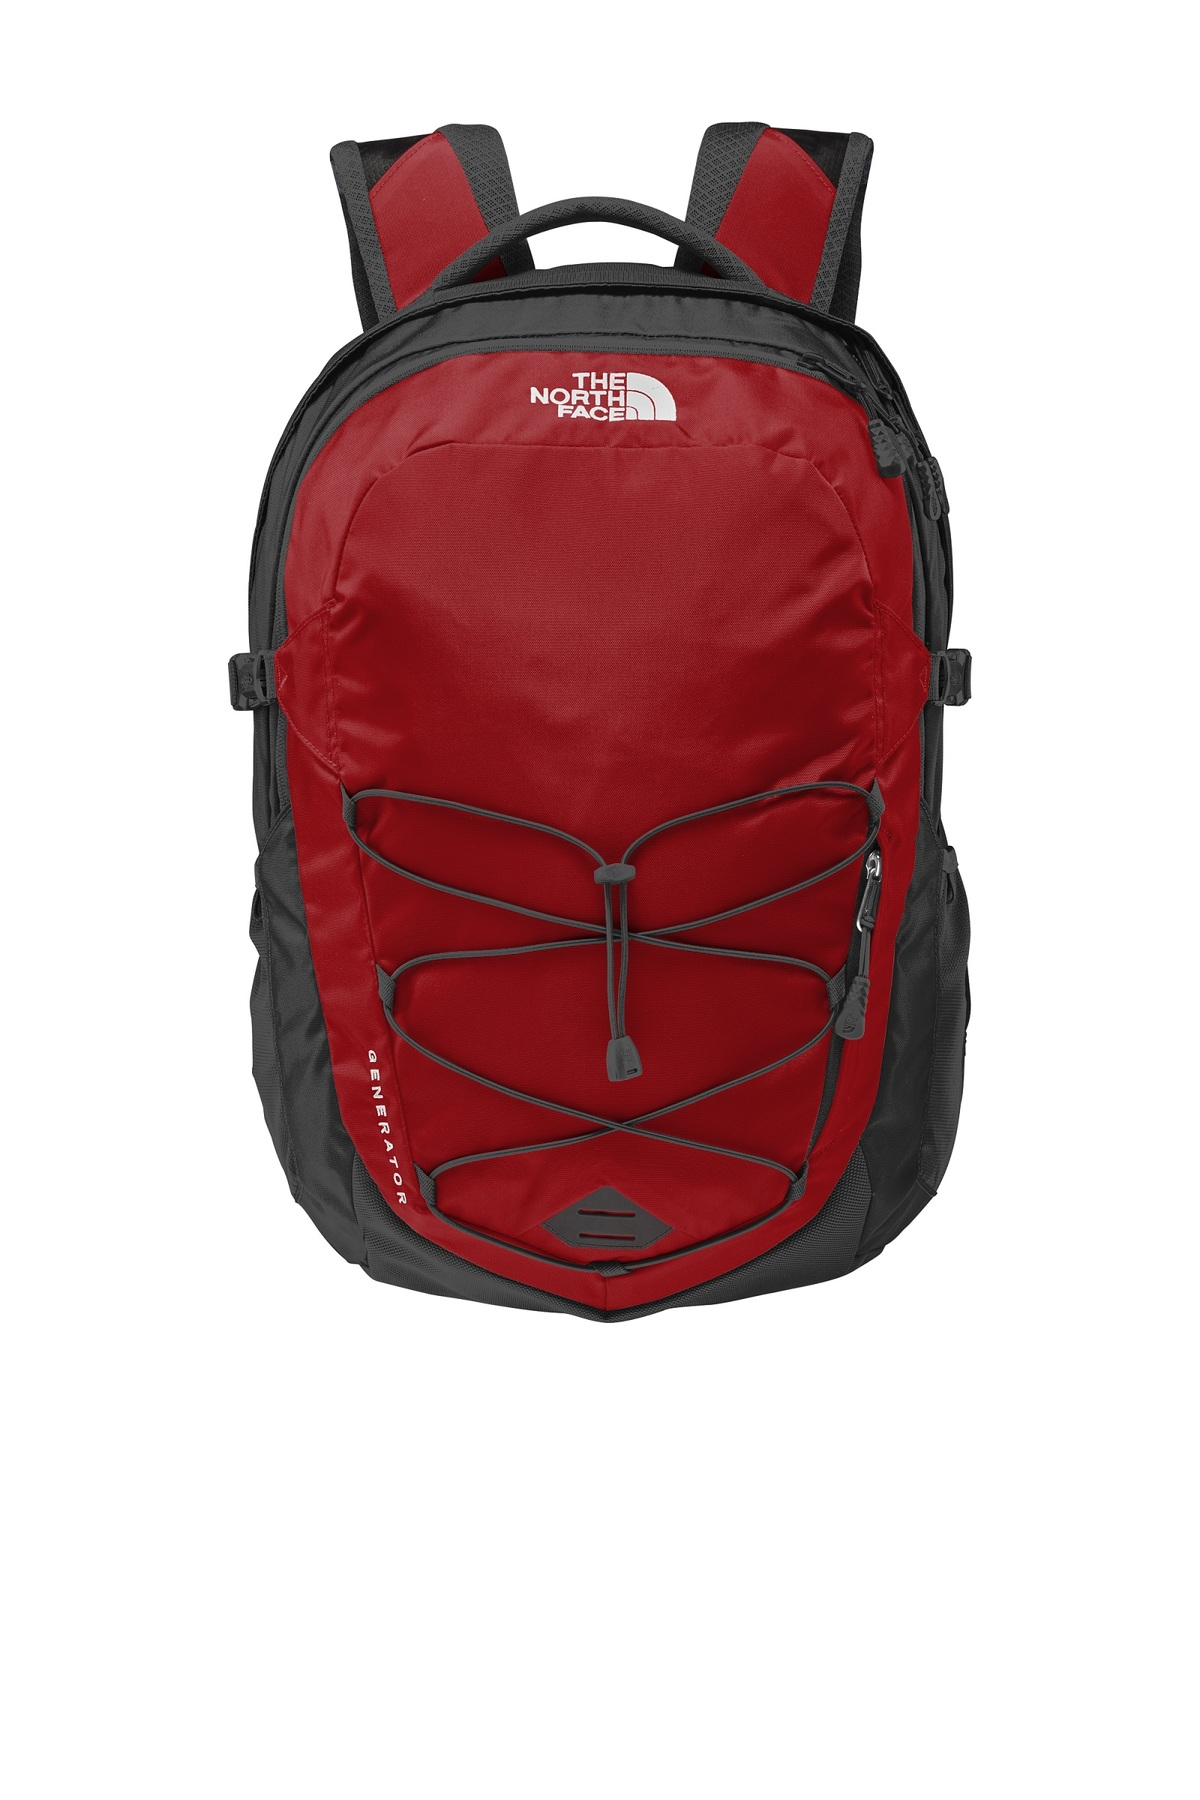 7e4f2a6c4a North Face Premium Rucksack Backpack Review- Fenix Toulouse Handball